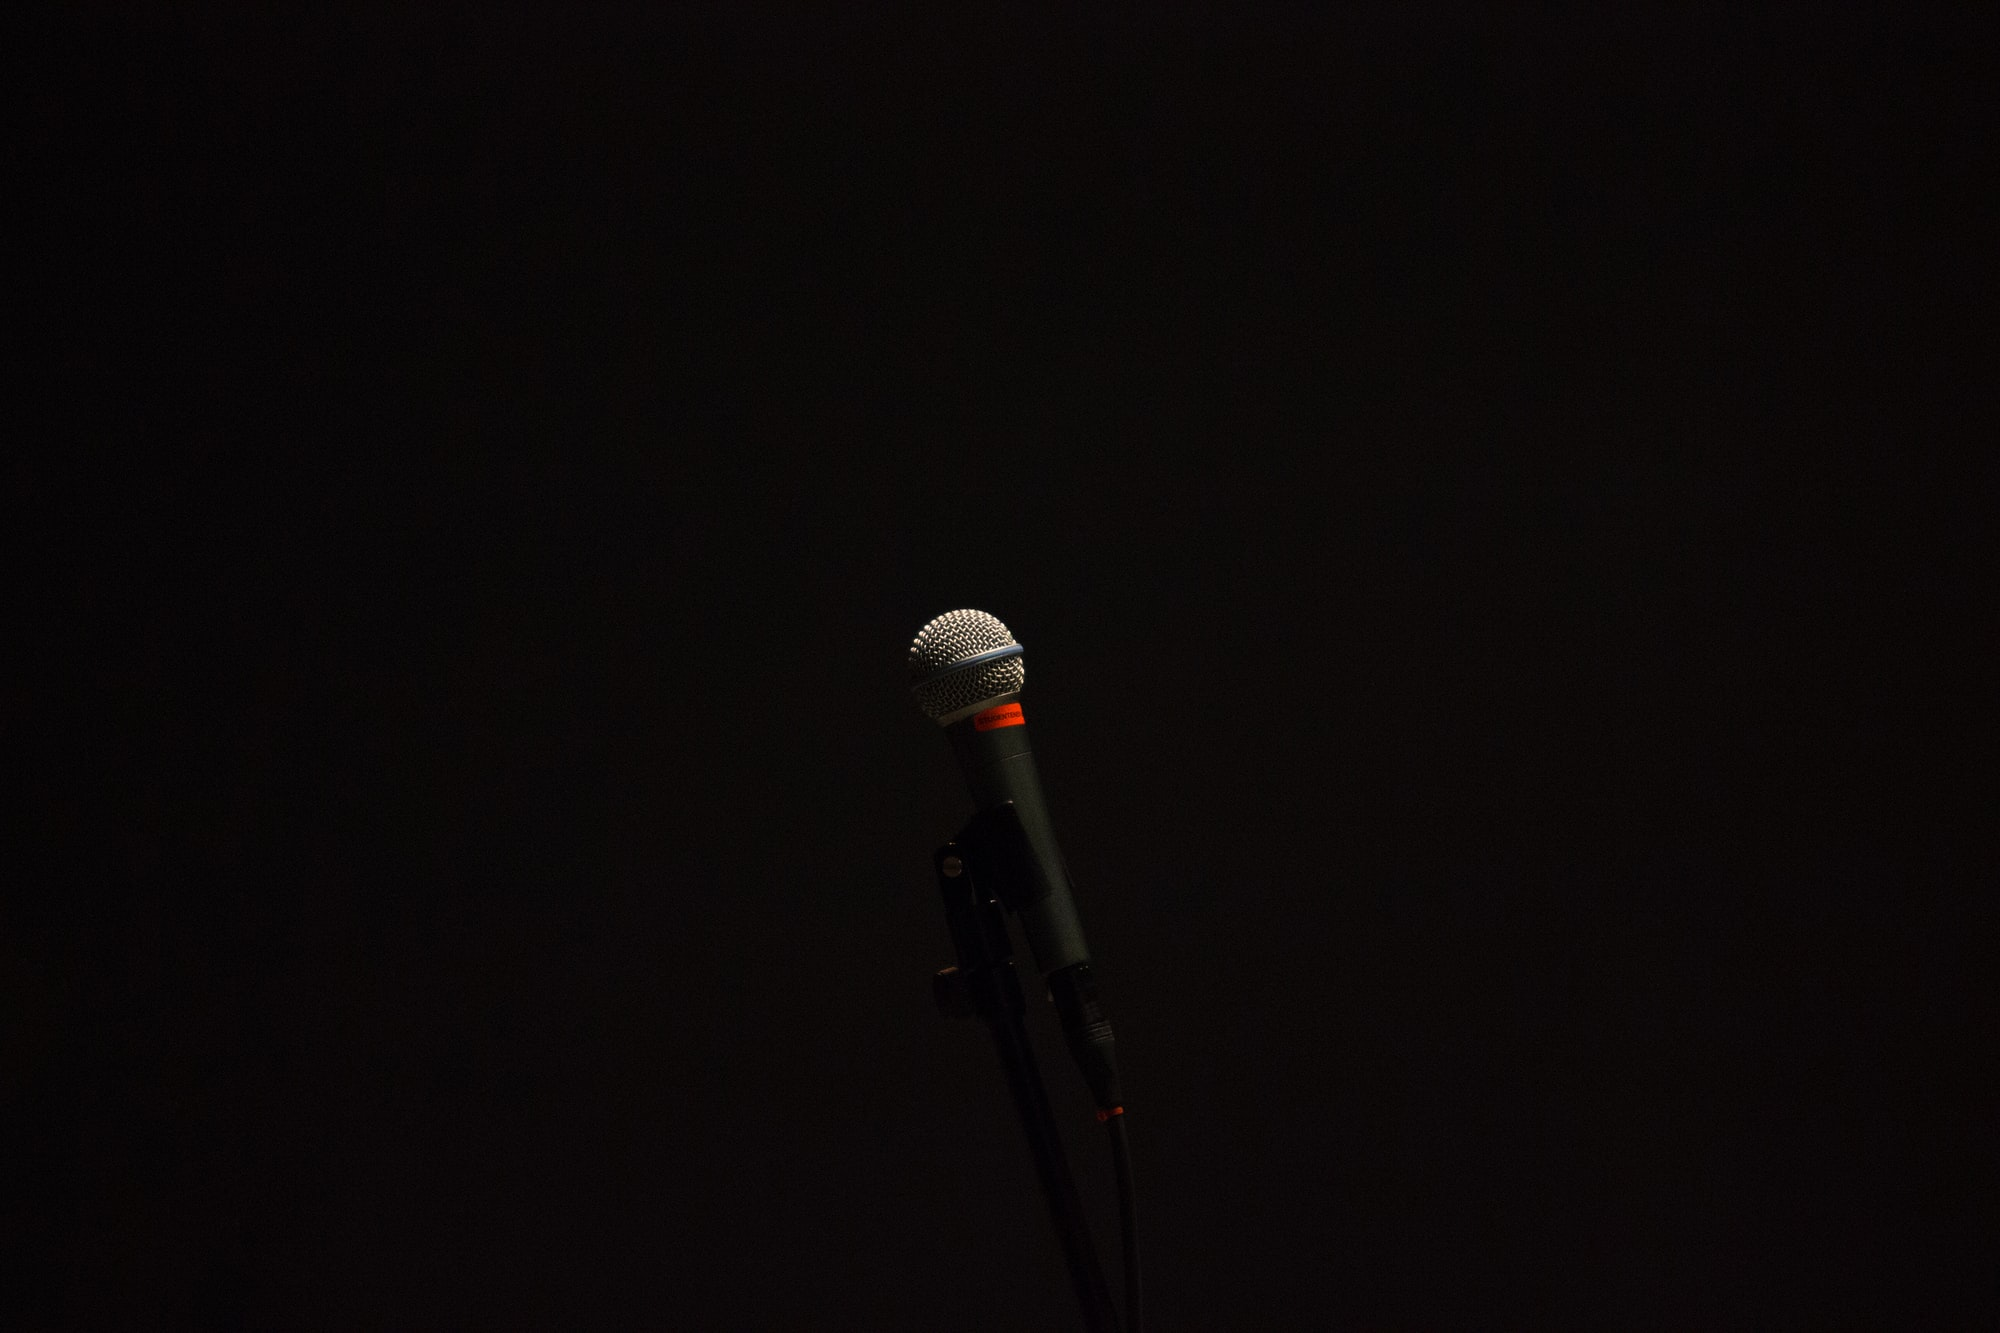 I have always loved minimal photos, but never something I've manged to gotten quite right myself. This shot I was quite surprised with and how much I ended up liking it. Was shot while practicing some music photography for a band doing some practice playing.